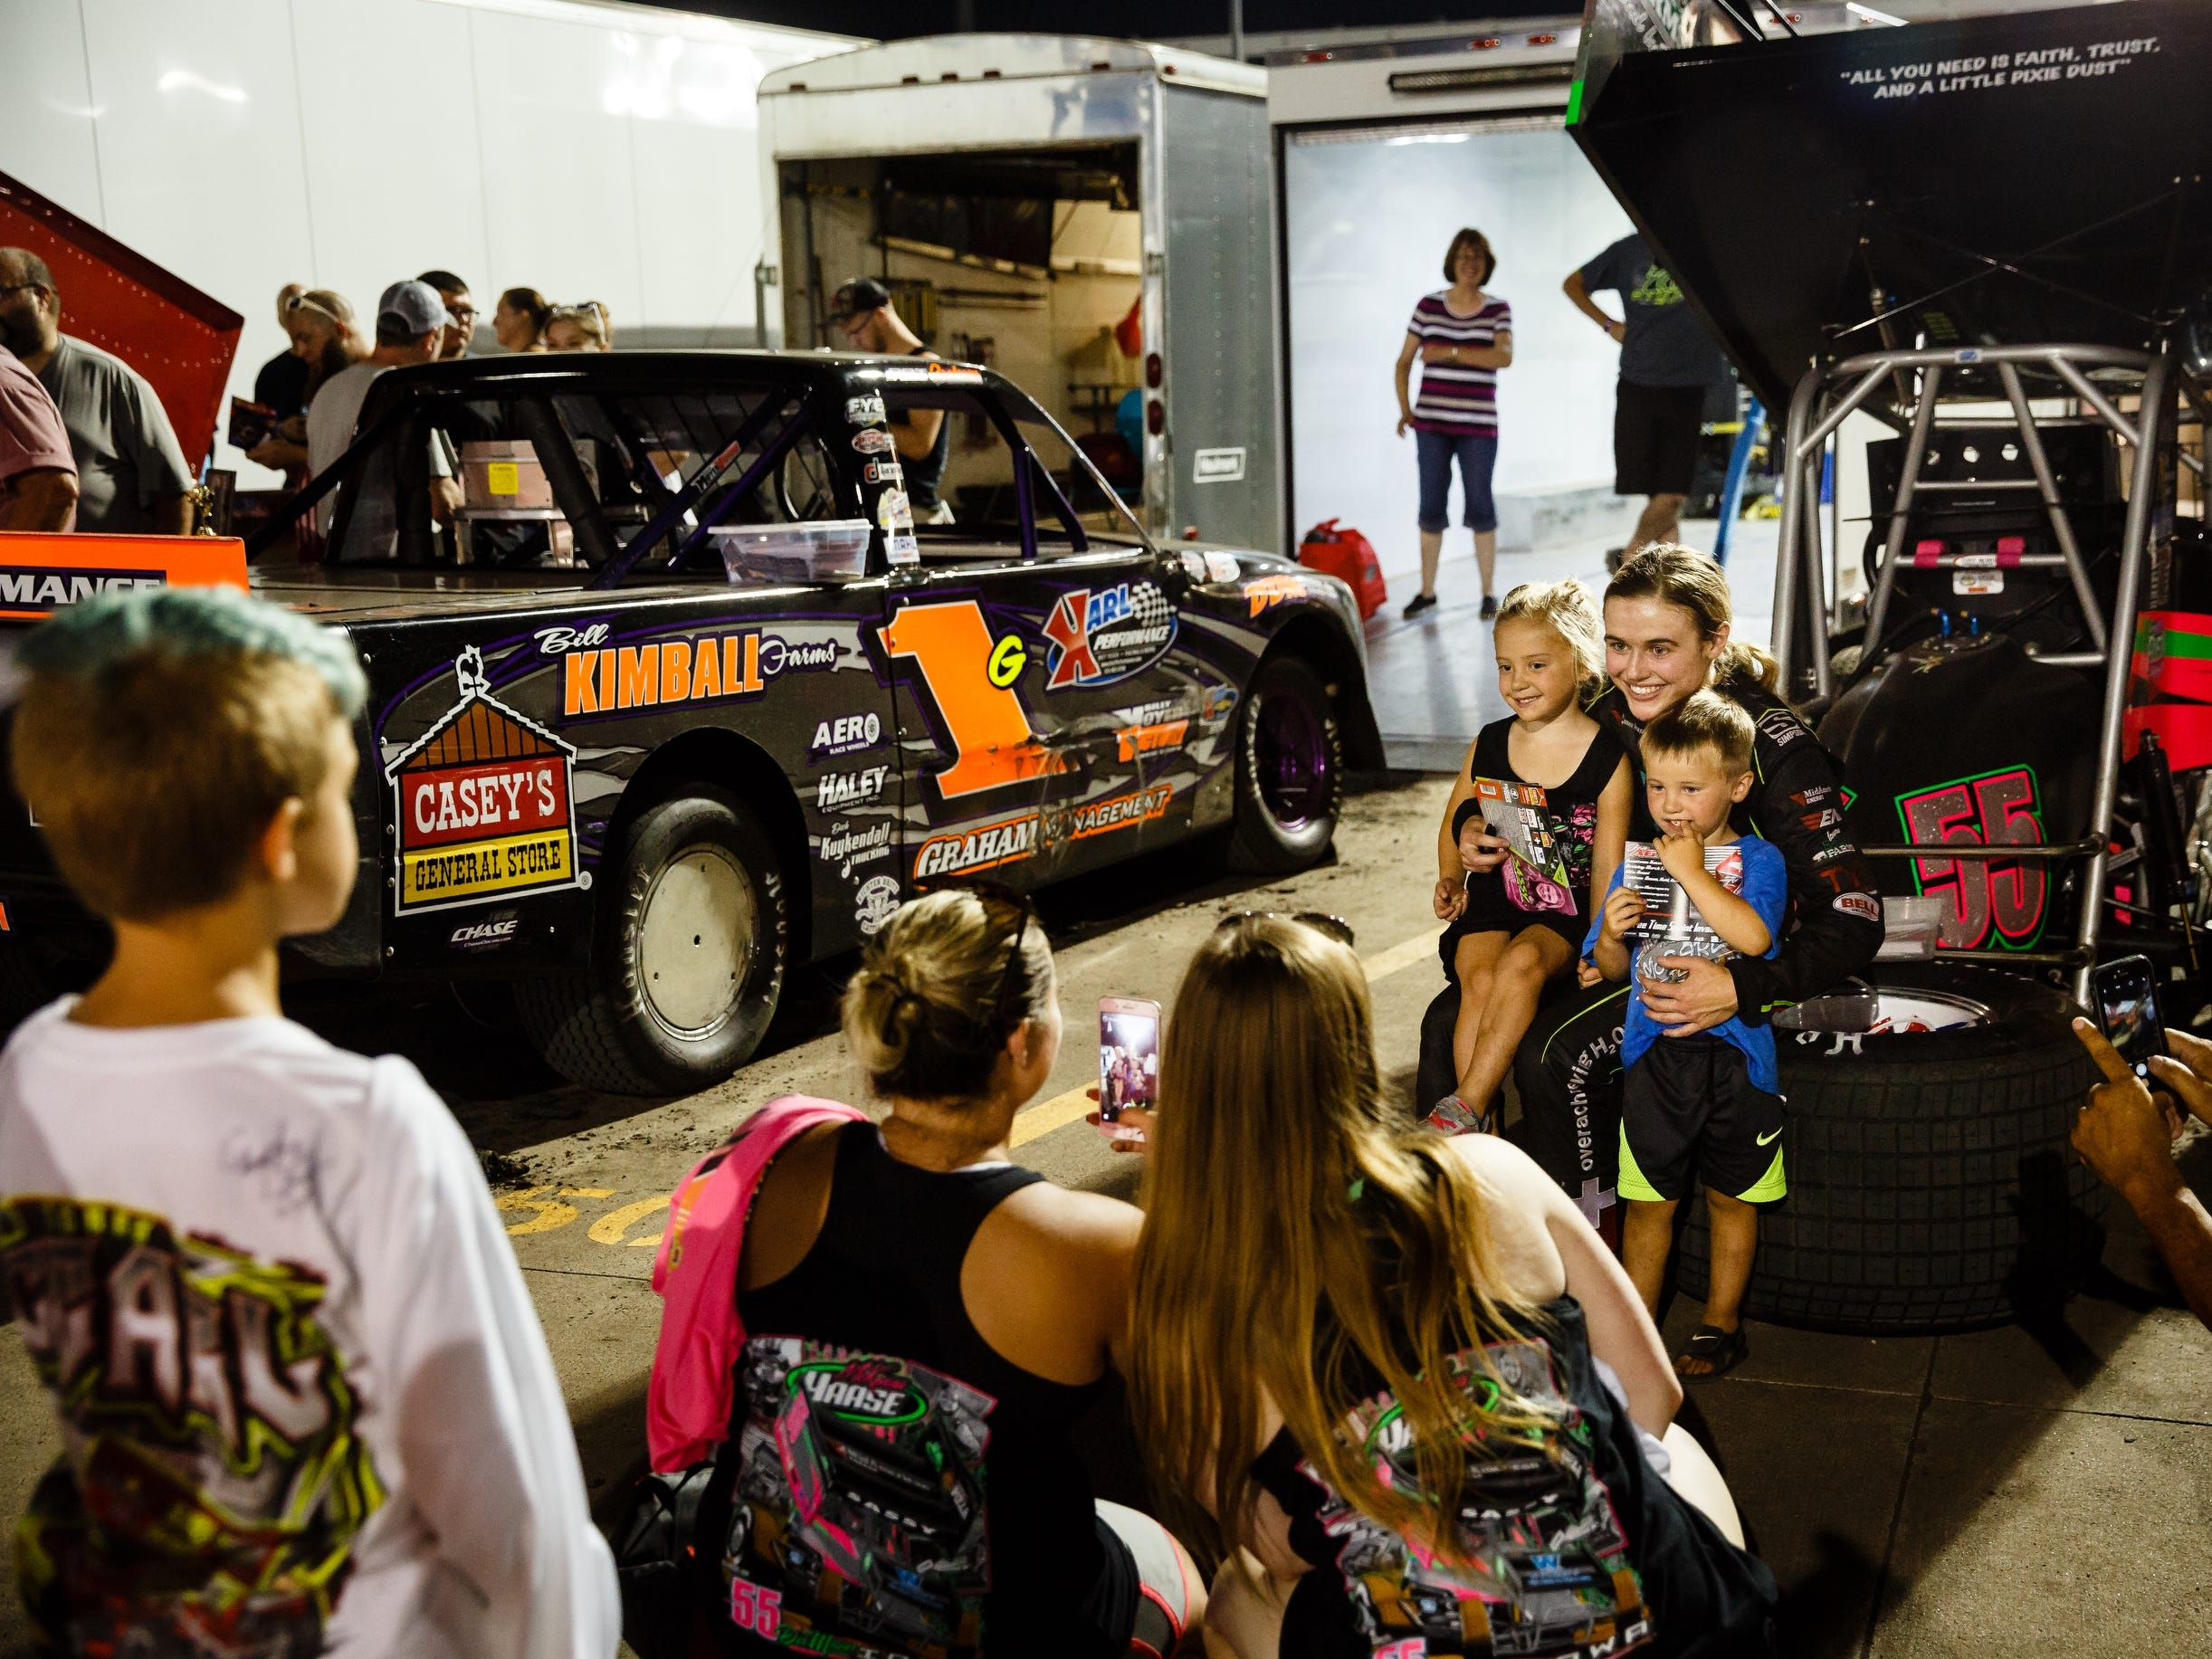 After the races, families line up to get photos and autographs from McKenna Haase behind her car on Saturday, July 14, 2018, in Knoxville.